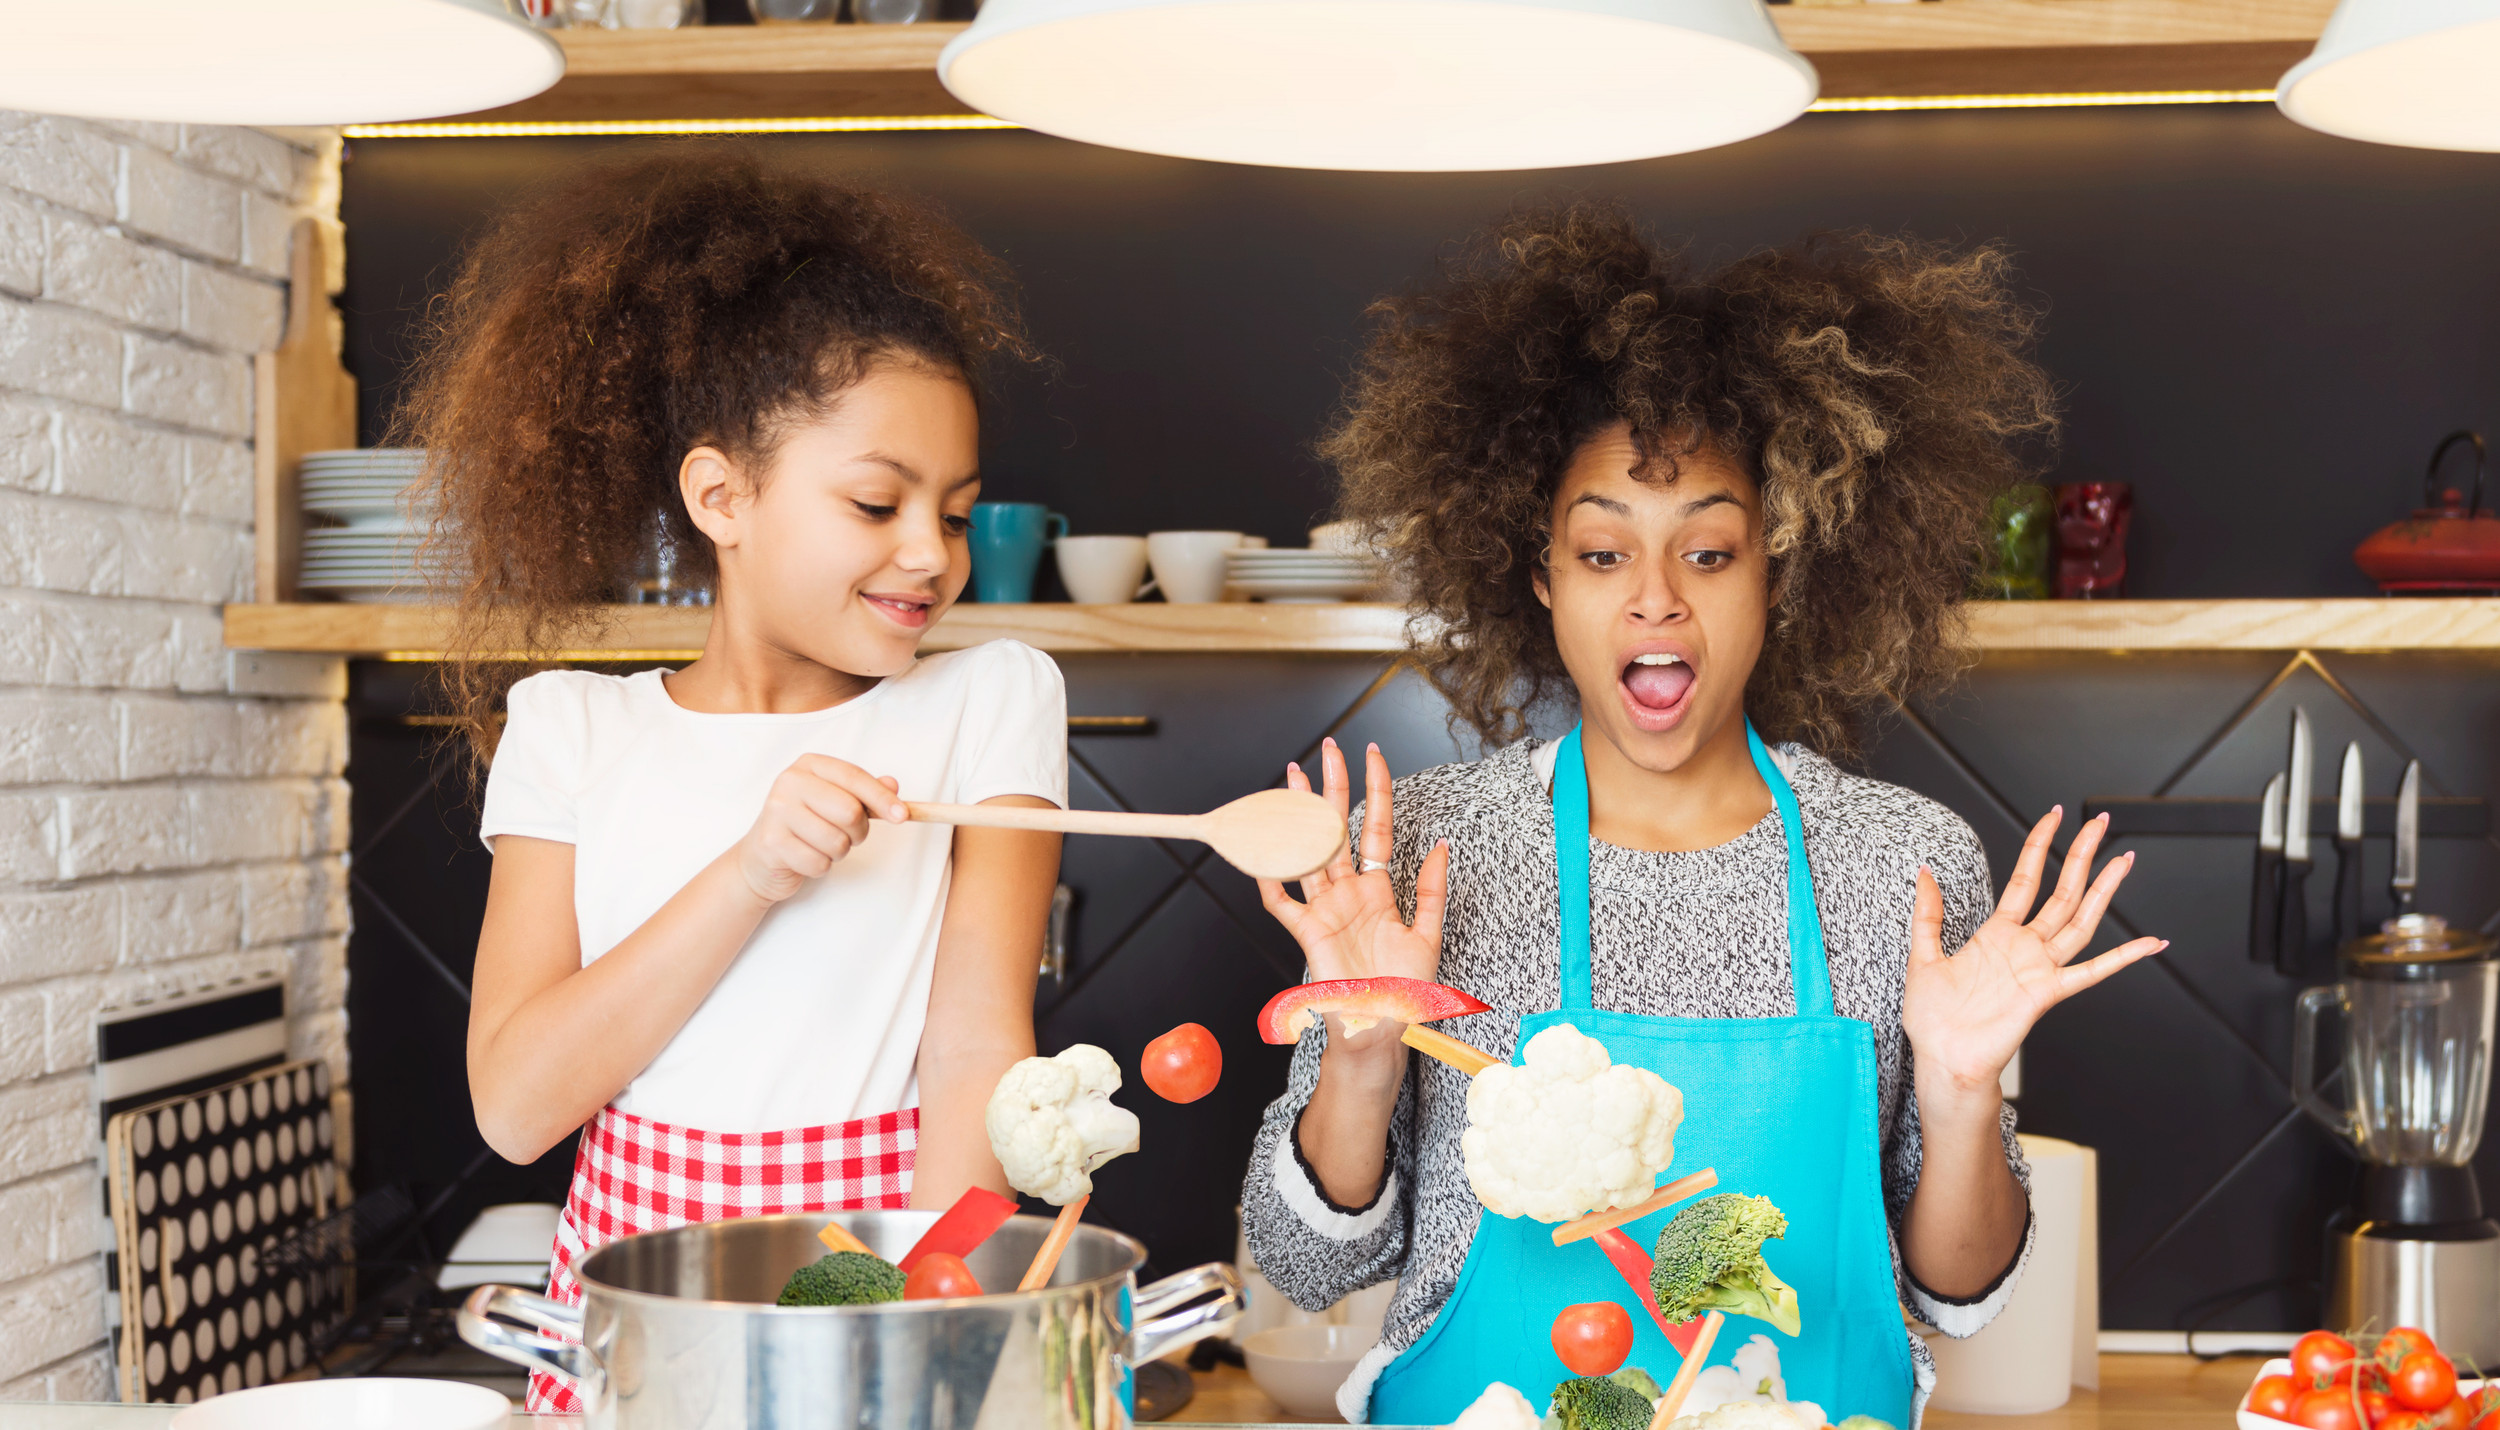 8 key strategies to help keep overbooked families from overspending